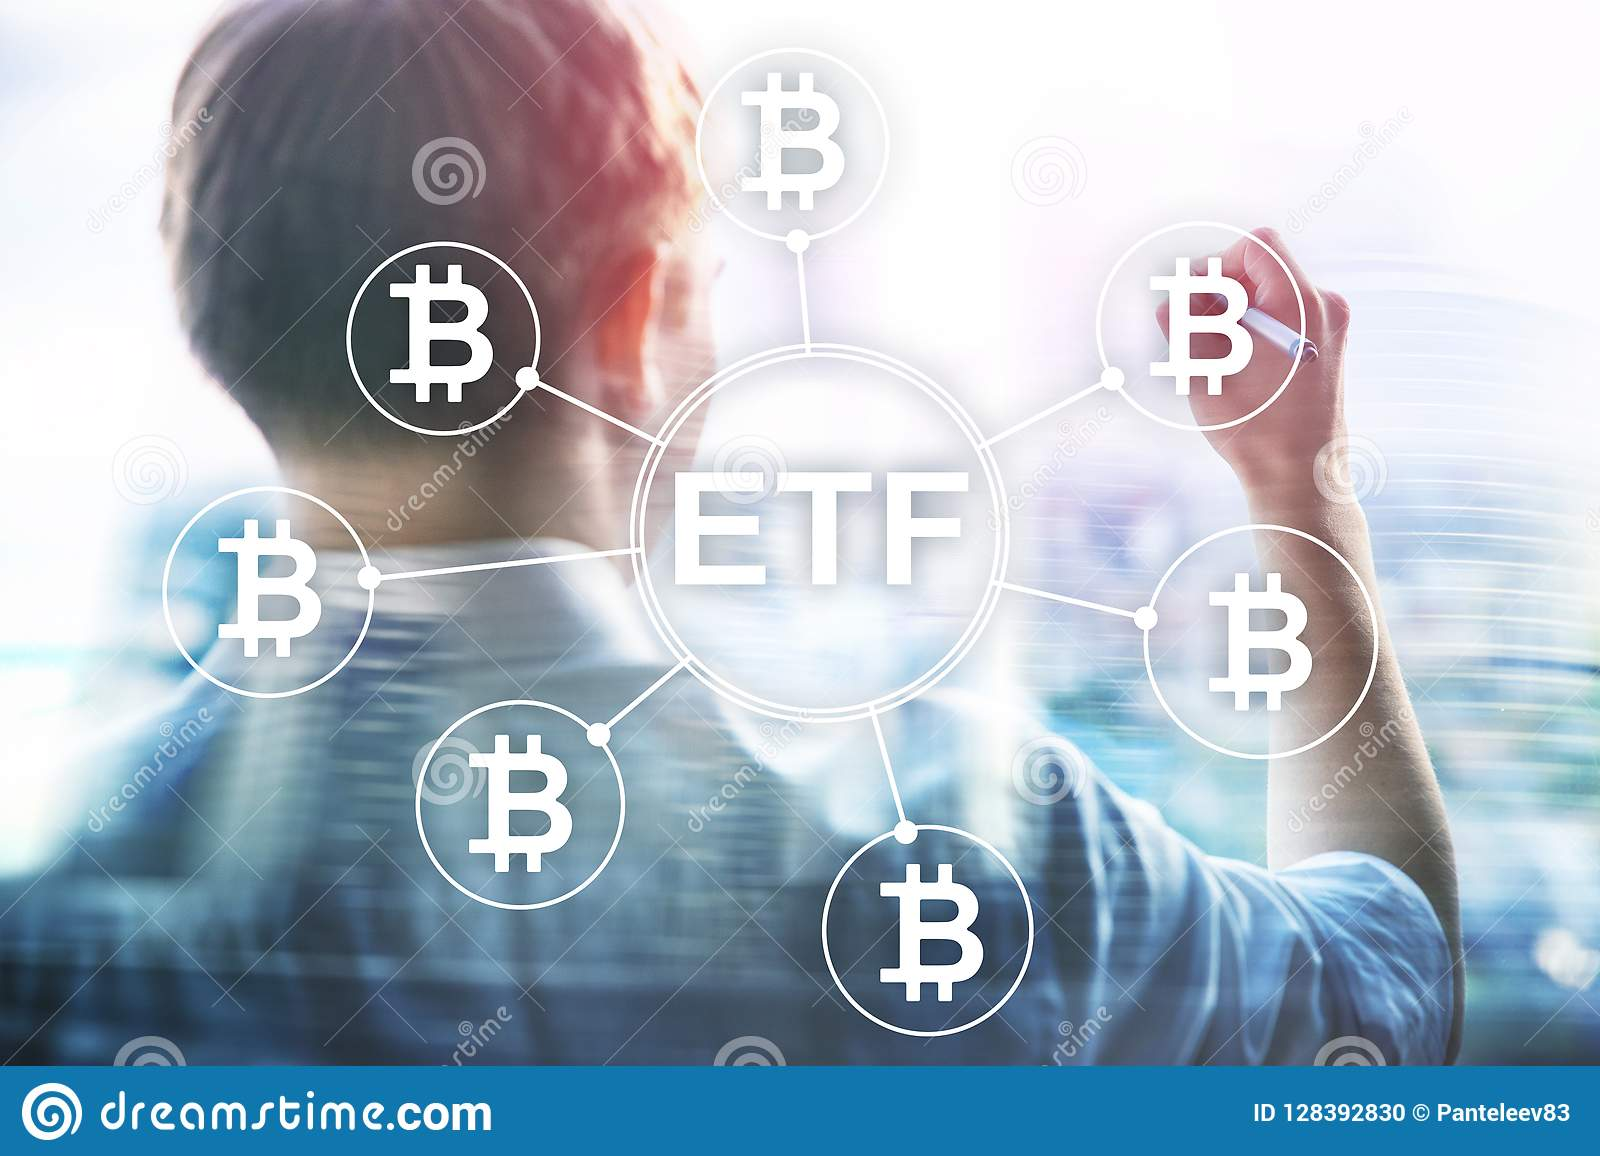 cryptocurrency trading &